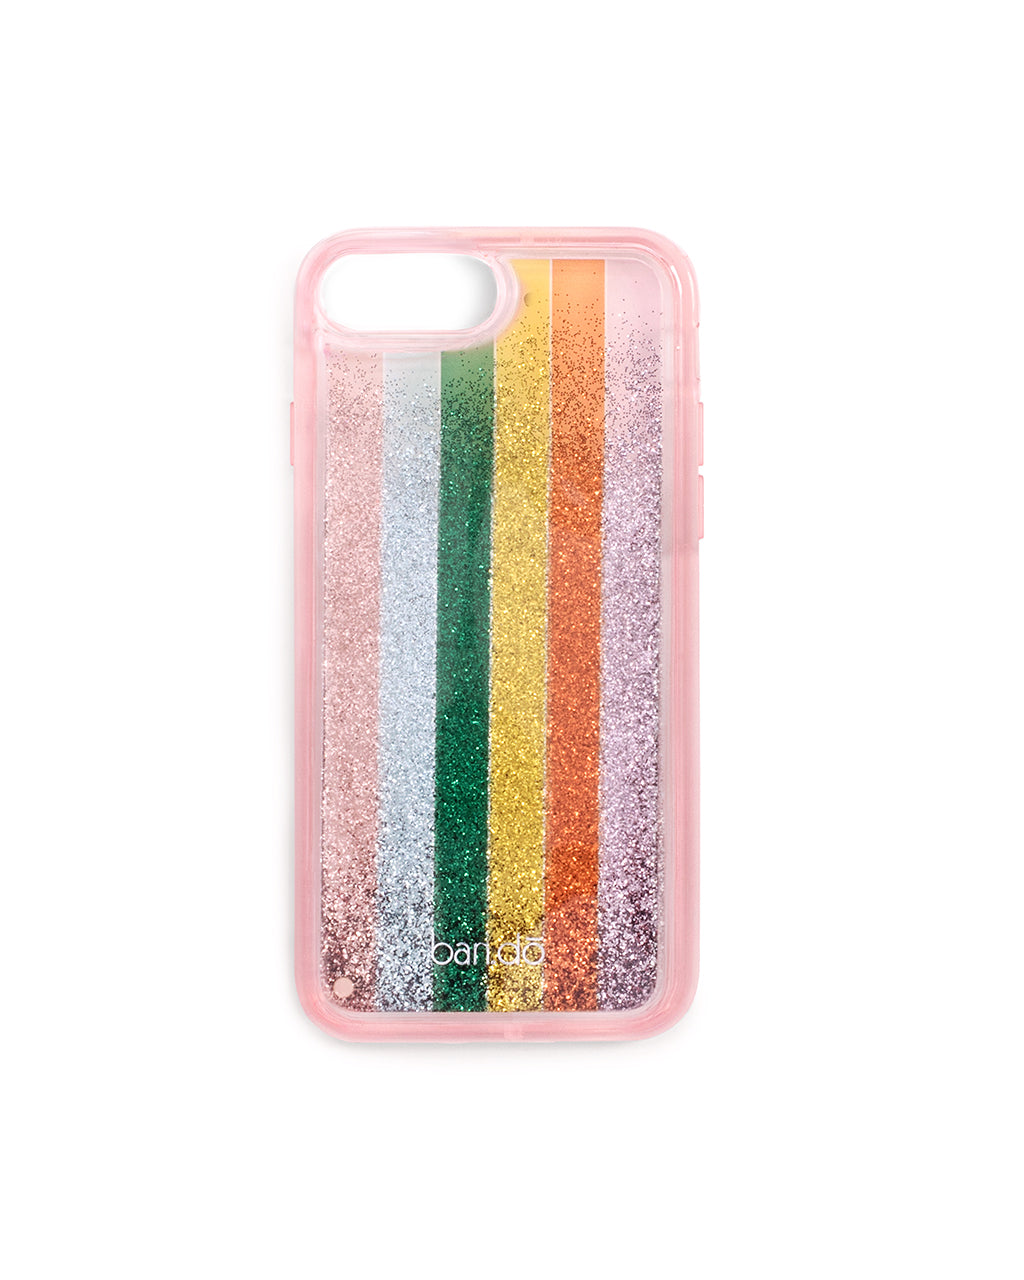 glitter bomb iphone plus case - color wheel